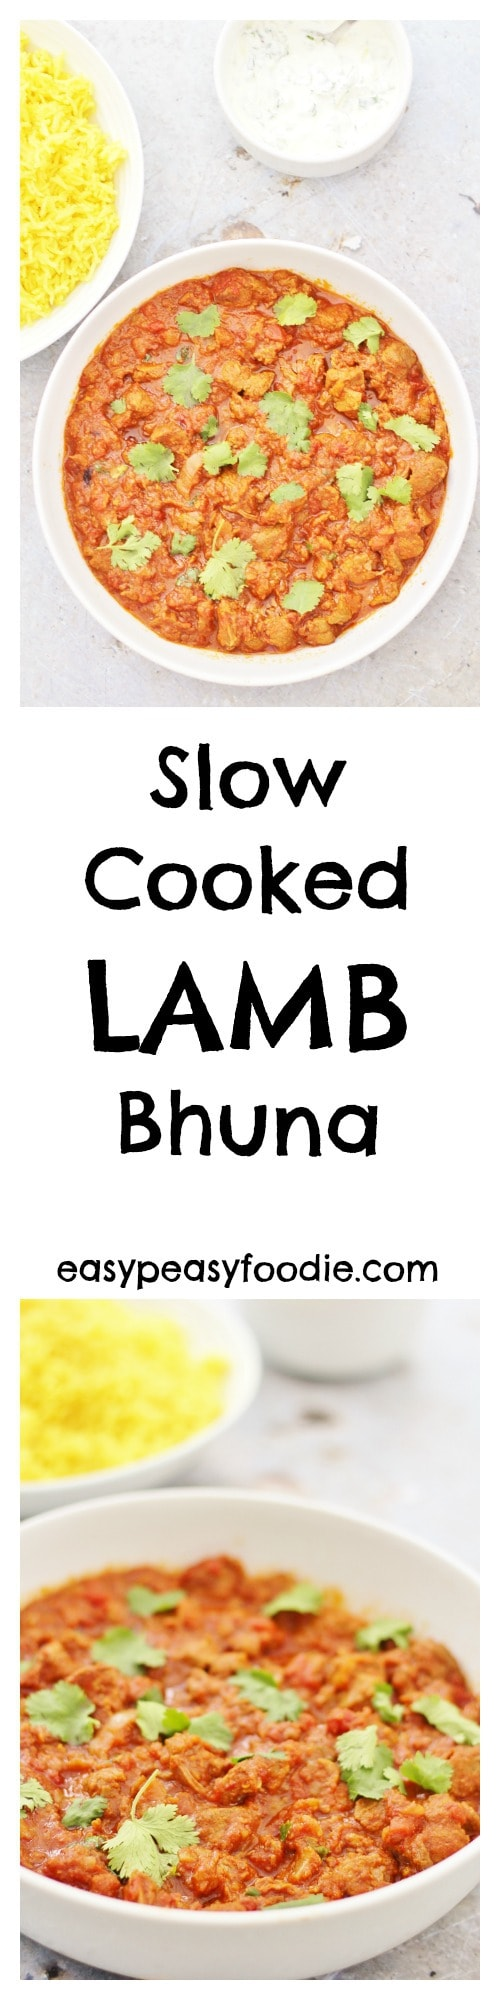 Easy, warming and delicious, this Slow Cooked Lamb Bhuna is perfect for chilly autumn and winter days. Only 10 mins prep and then let your oven or slow cooker take the strain until you are ready to eat. Make double and freeze the rest and you'll have an even easier meal for a busy day in the future! #lamb #curry #bhuna #slowcooker #crockpot #slowcooking #makeahead #freezermeals